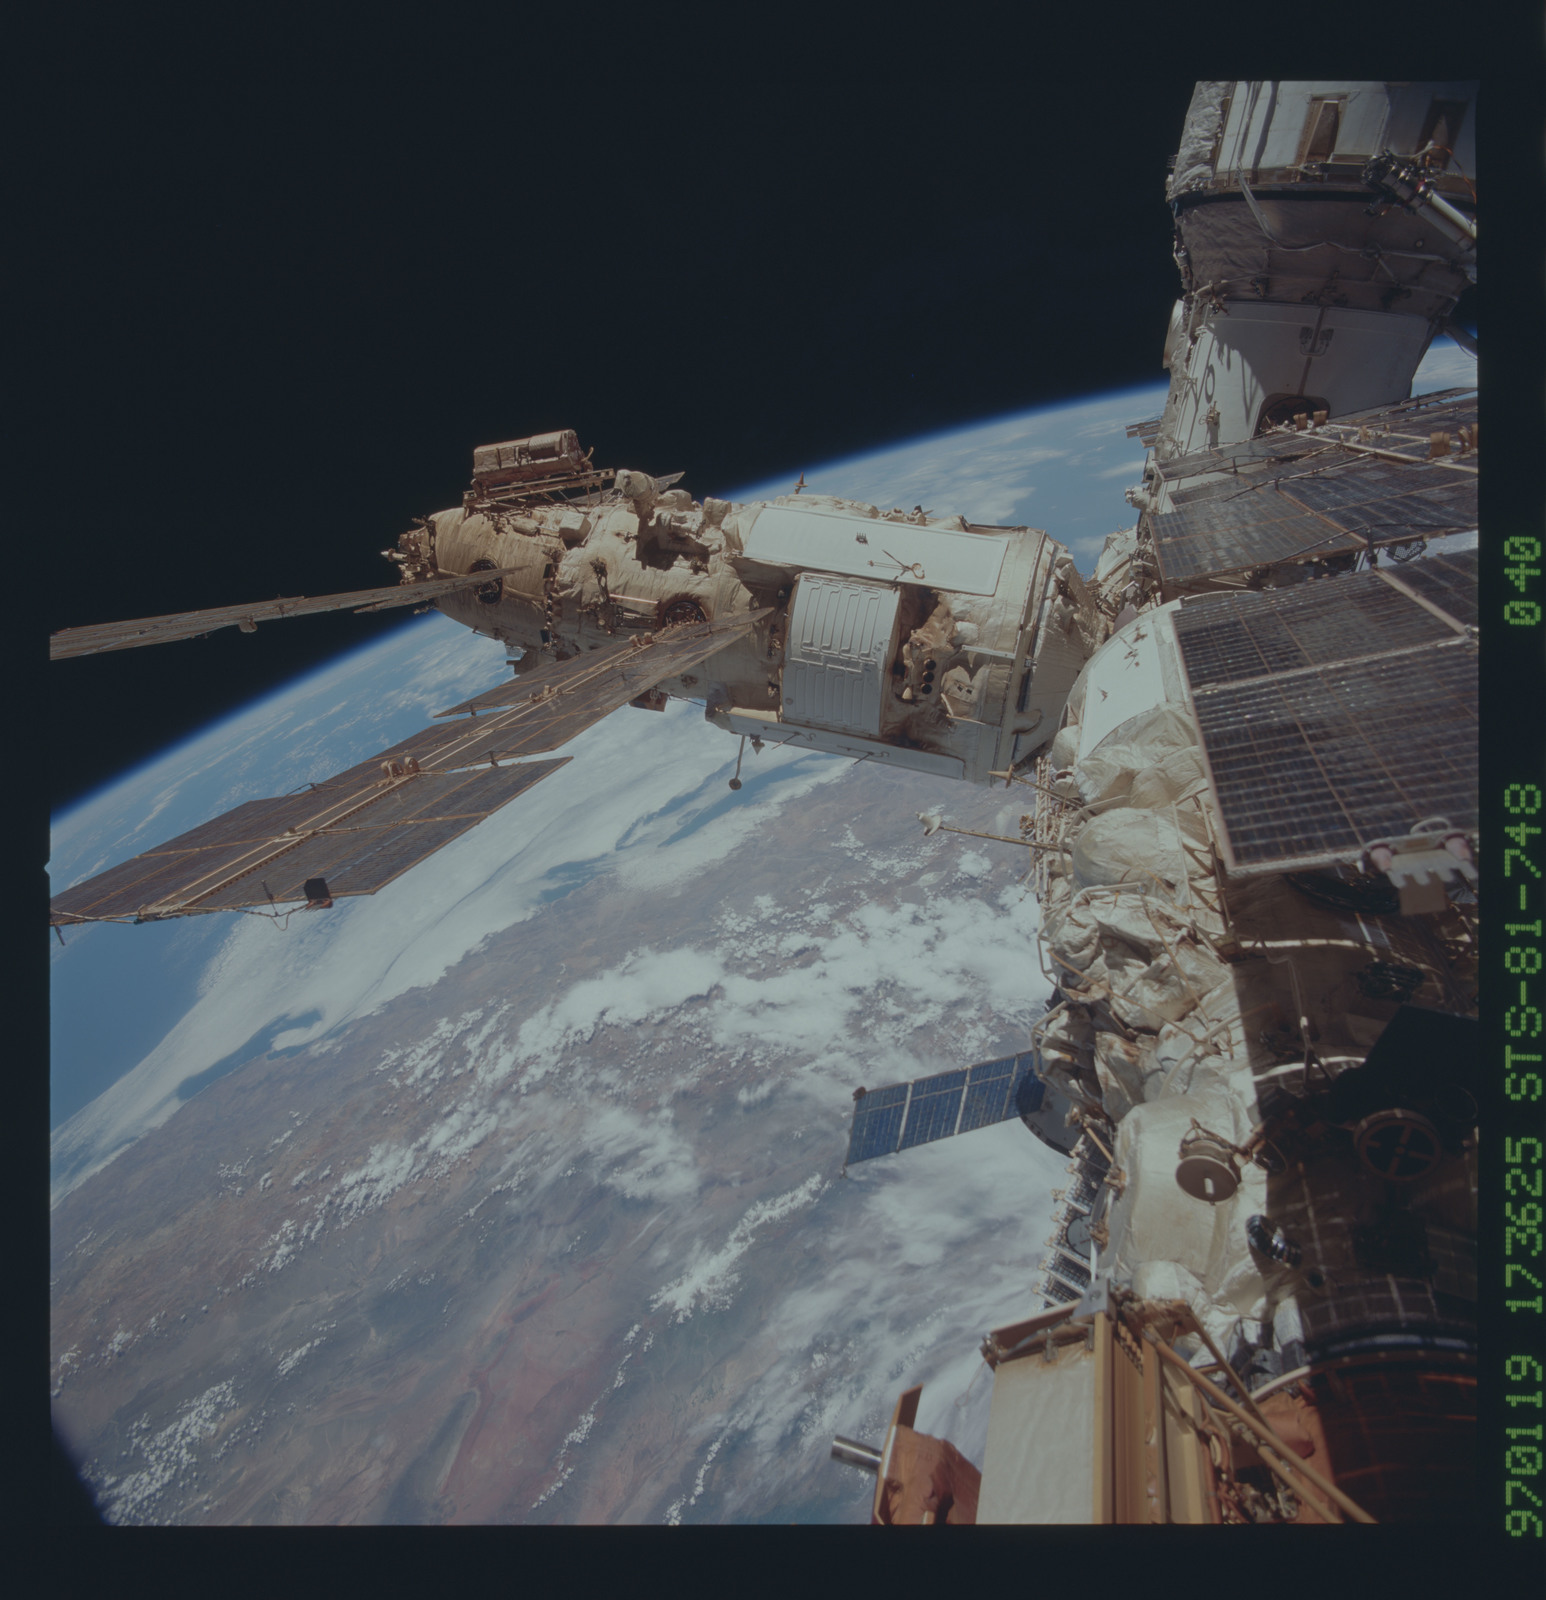 STS081-748-040 - STS-081 - Exterior views of the Mir space station taken after rendezvous